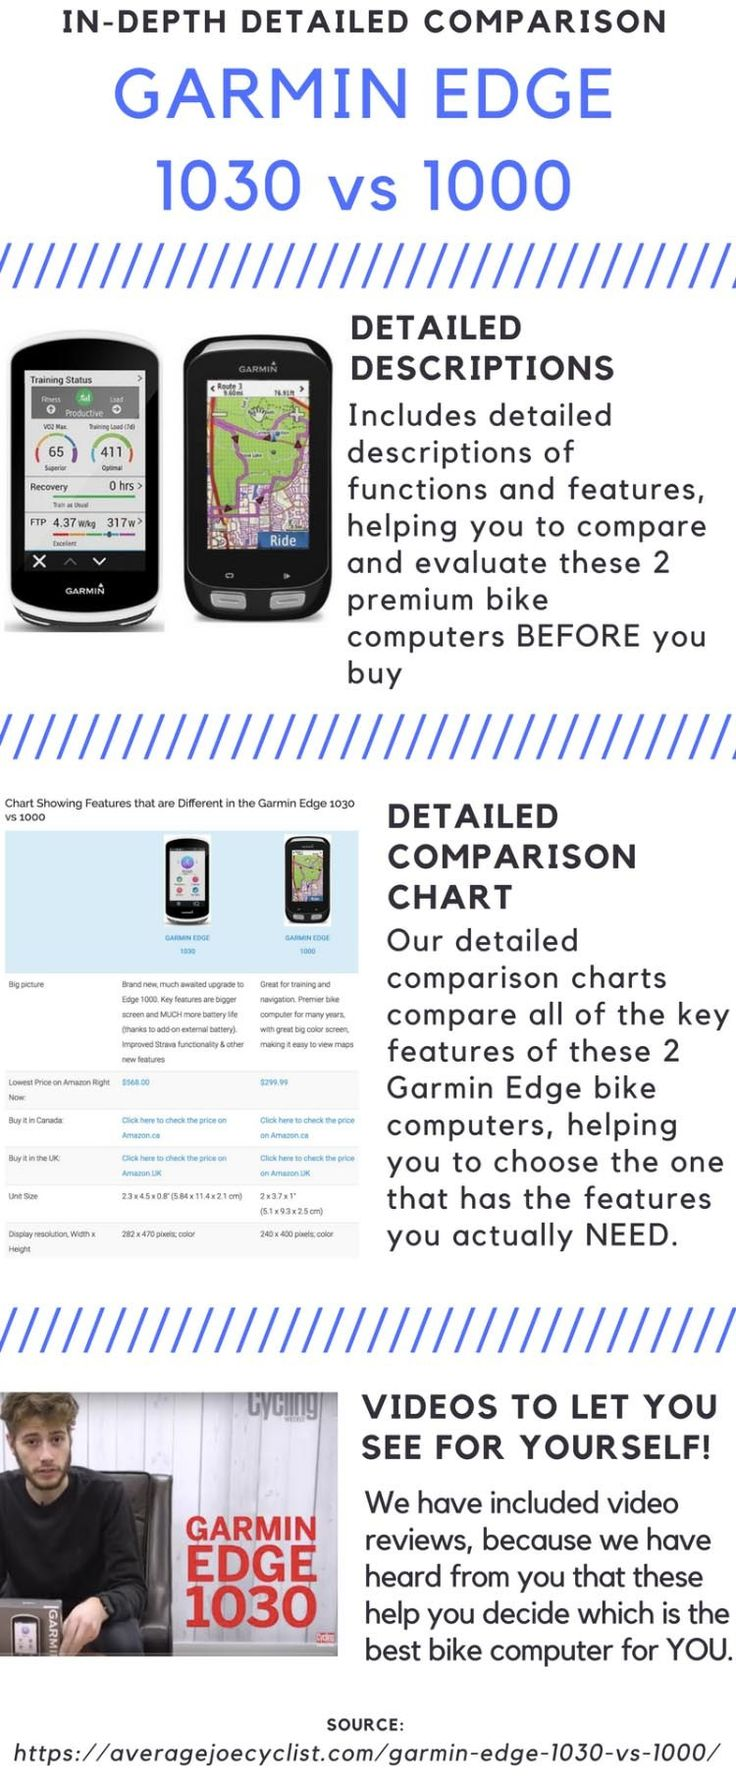 Garmin Edge 1030 vs 1000. This post compares the new Garmin Edge 1030 with the long-popular premium Garmin Edge 1000. It will help you decide if you should buy the Garmin Edge 1030 or the 1000 - and also, if you should upgrade your aging Edge 1000 for an Edge 1030. The post includes a chart that shows all the key differences between the Garmin Edge 1030 vs 1000.